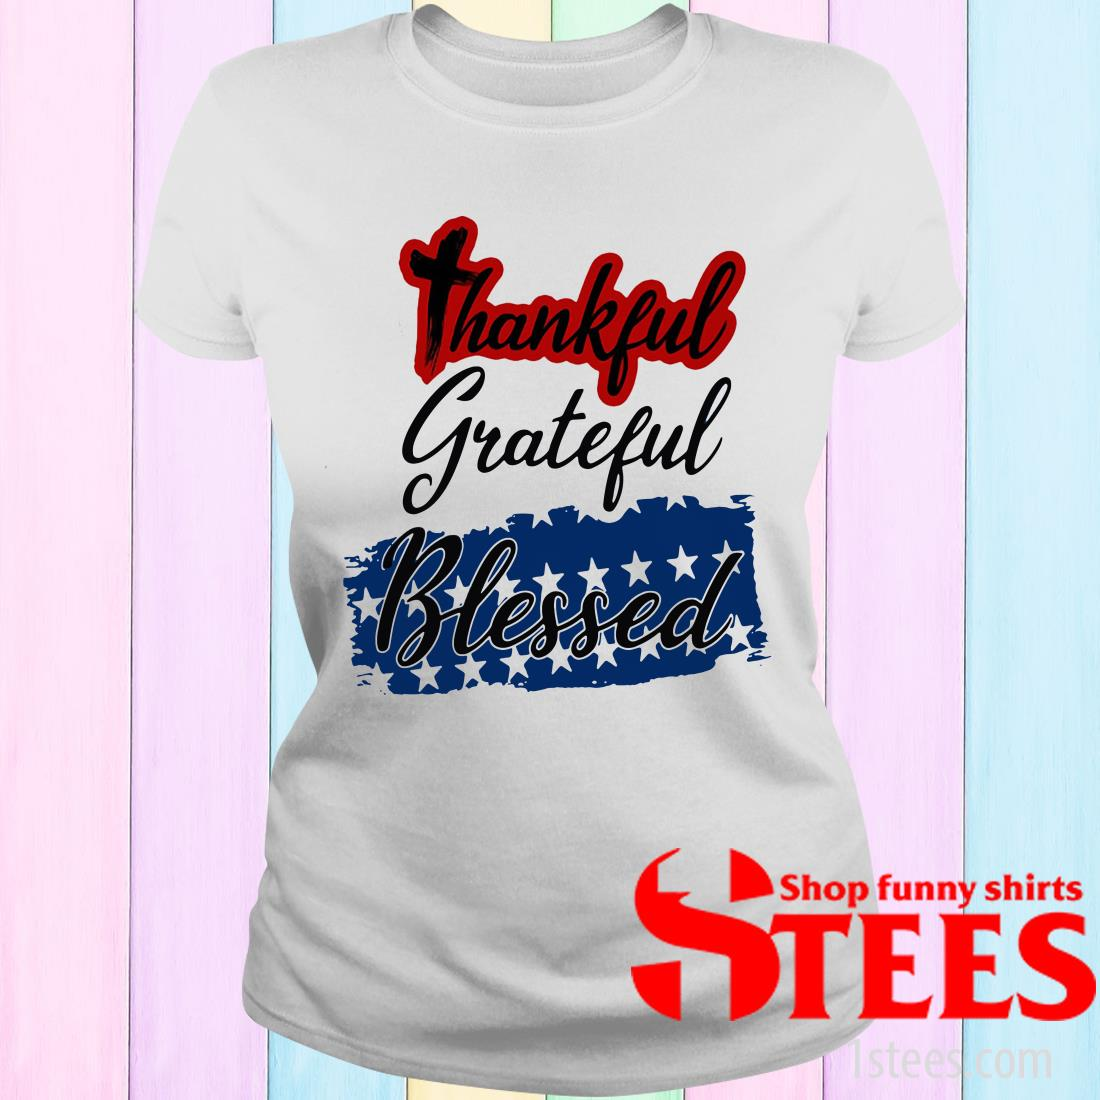 Thankful Grateful Blessed Independence Day Women's T-Shirt